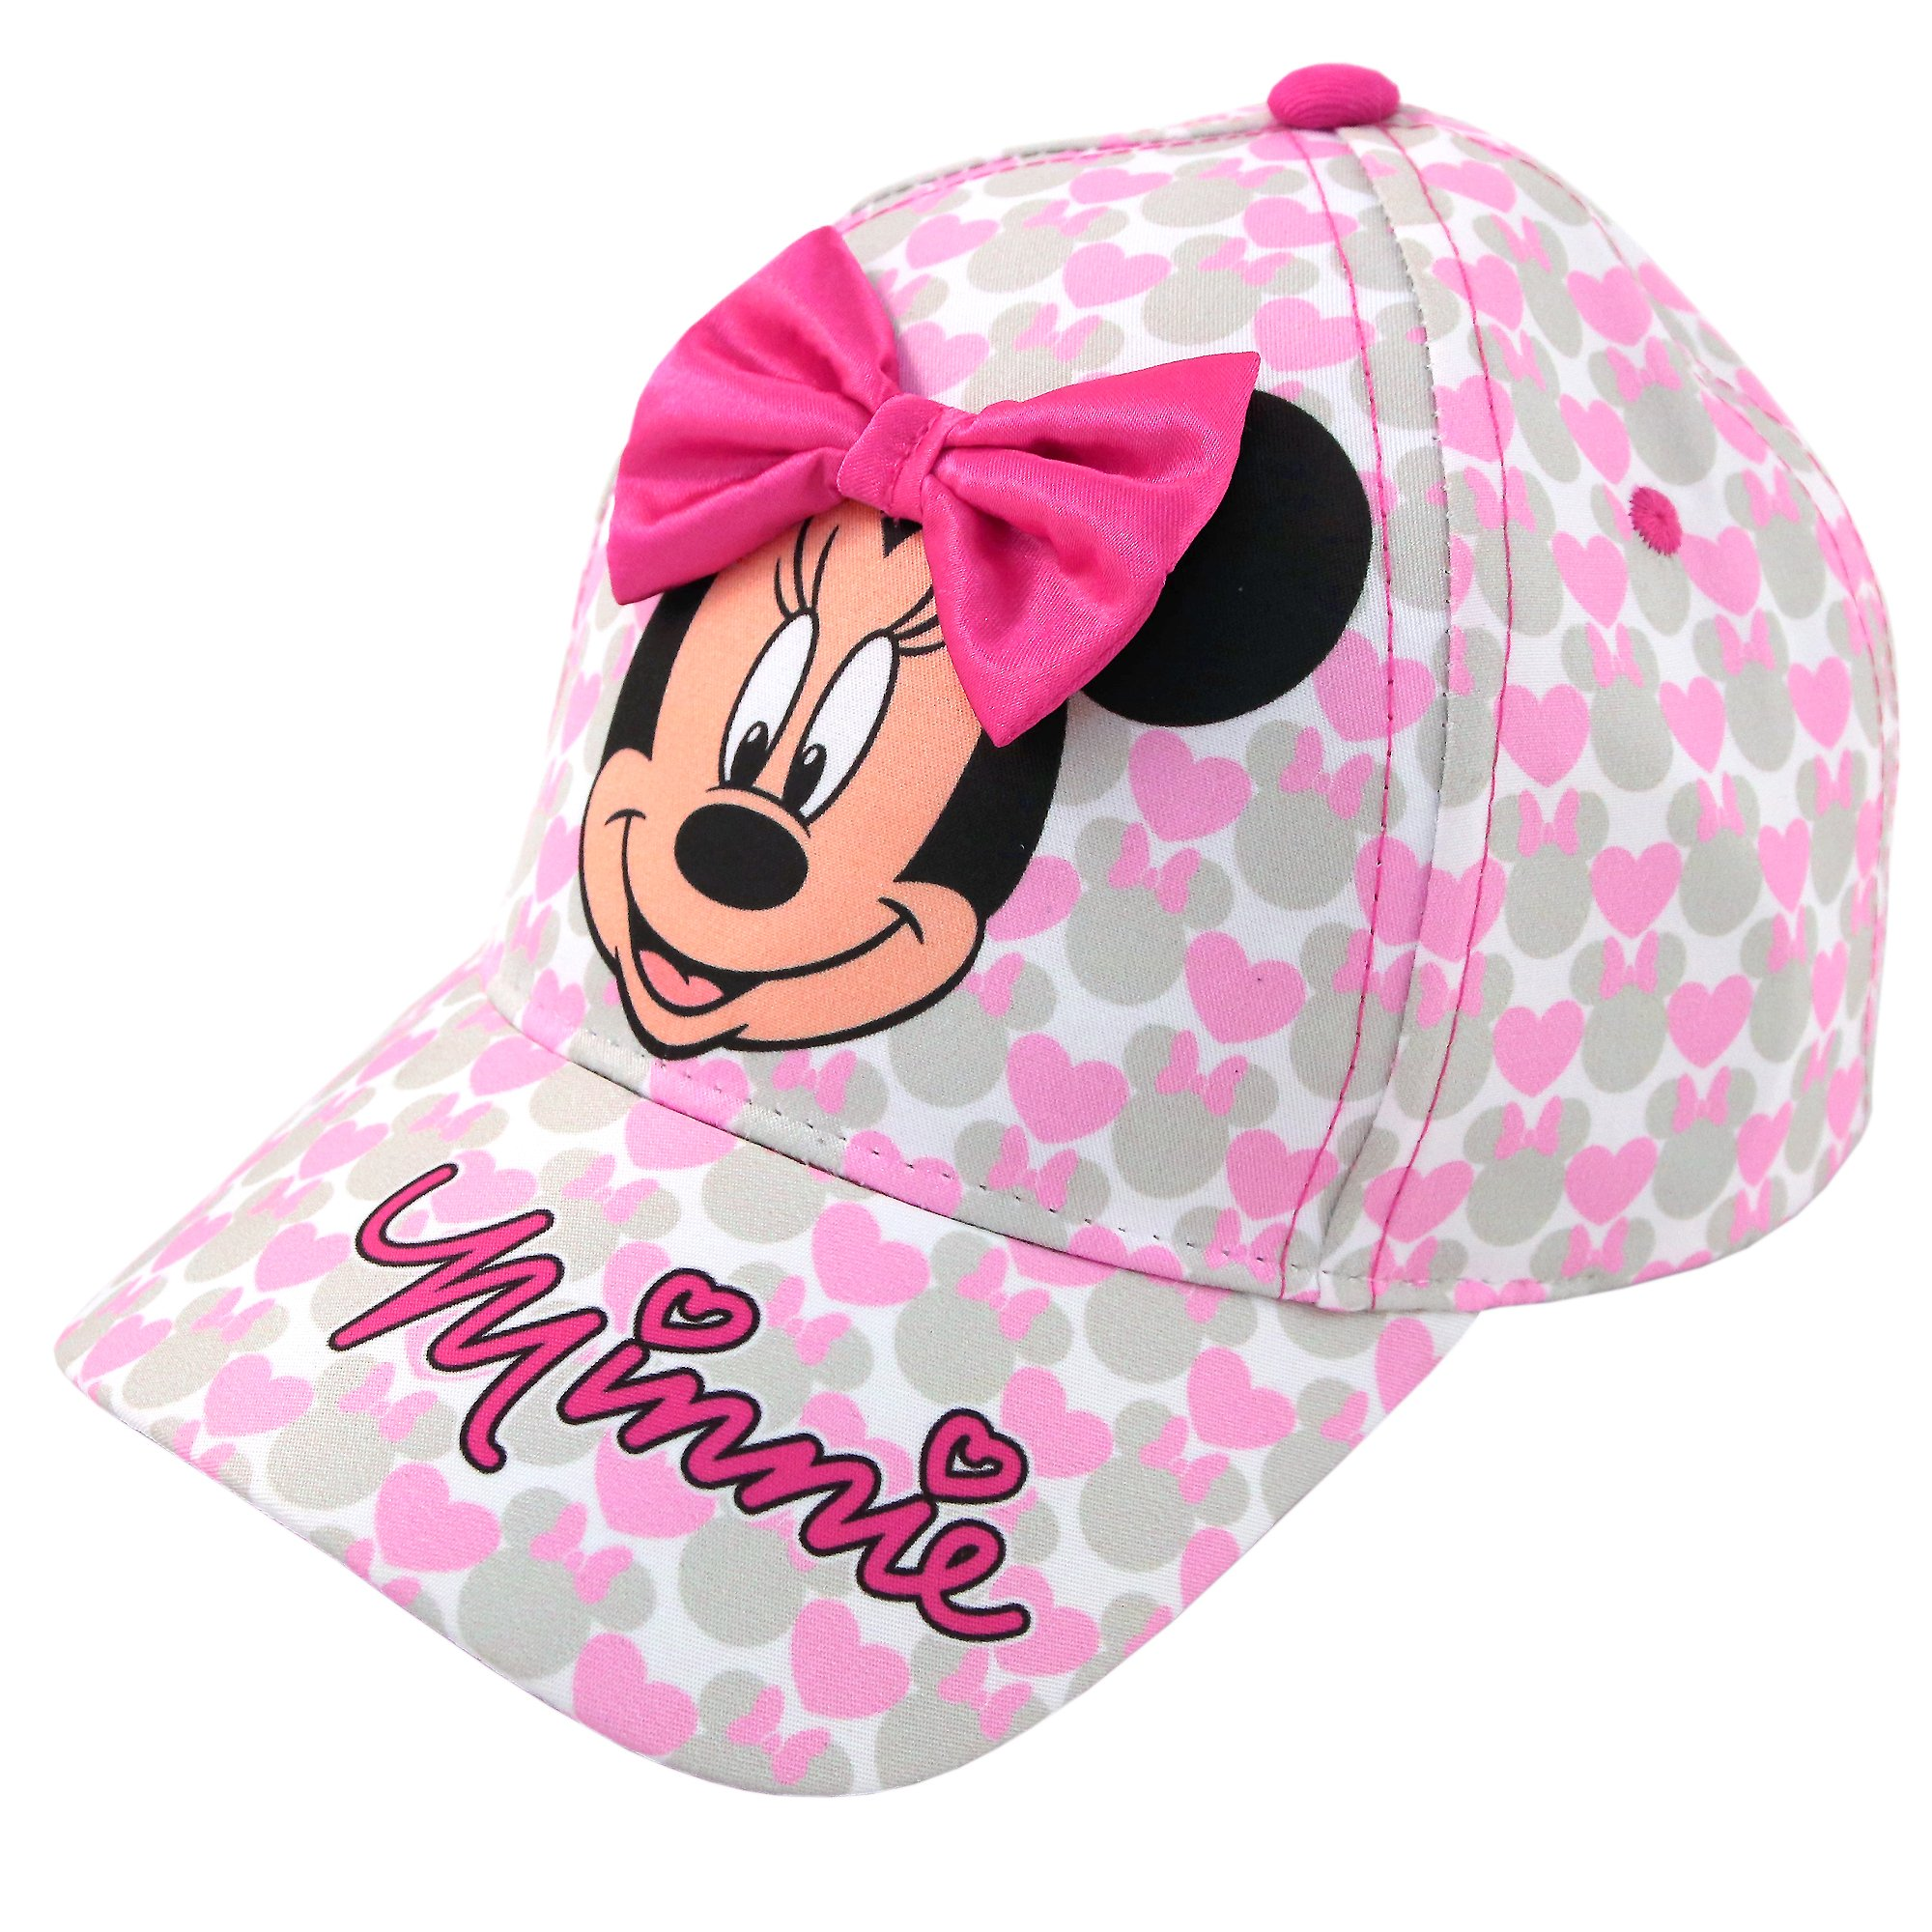 Disney Toddler Girls Minnie Mouse Bowtique Baseball Cap, Age 2-4 by Disney